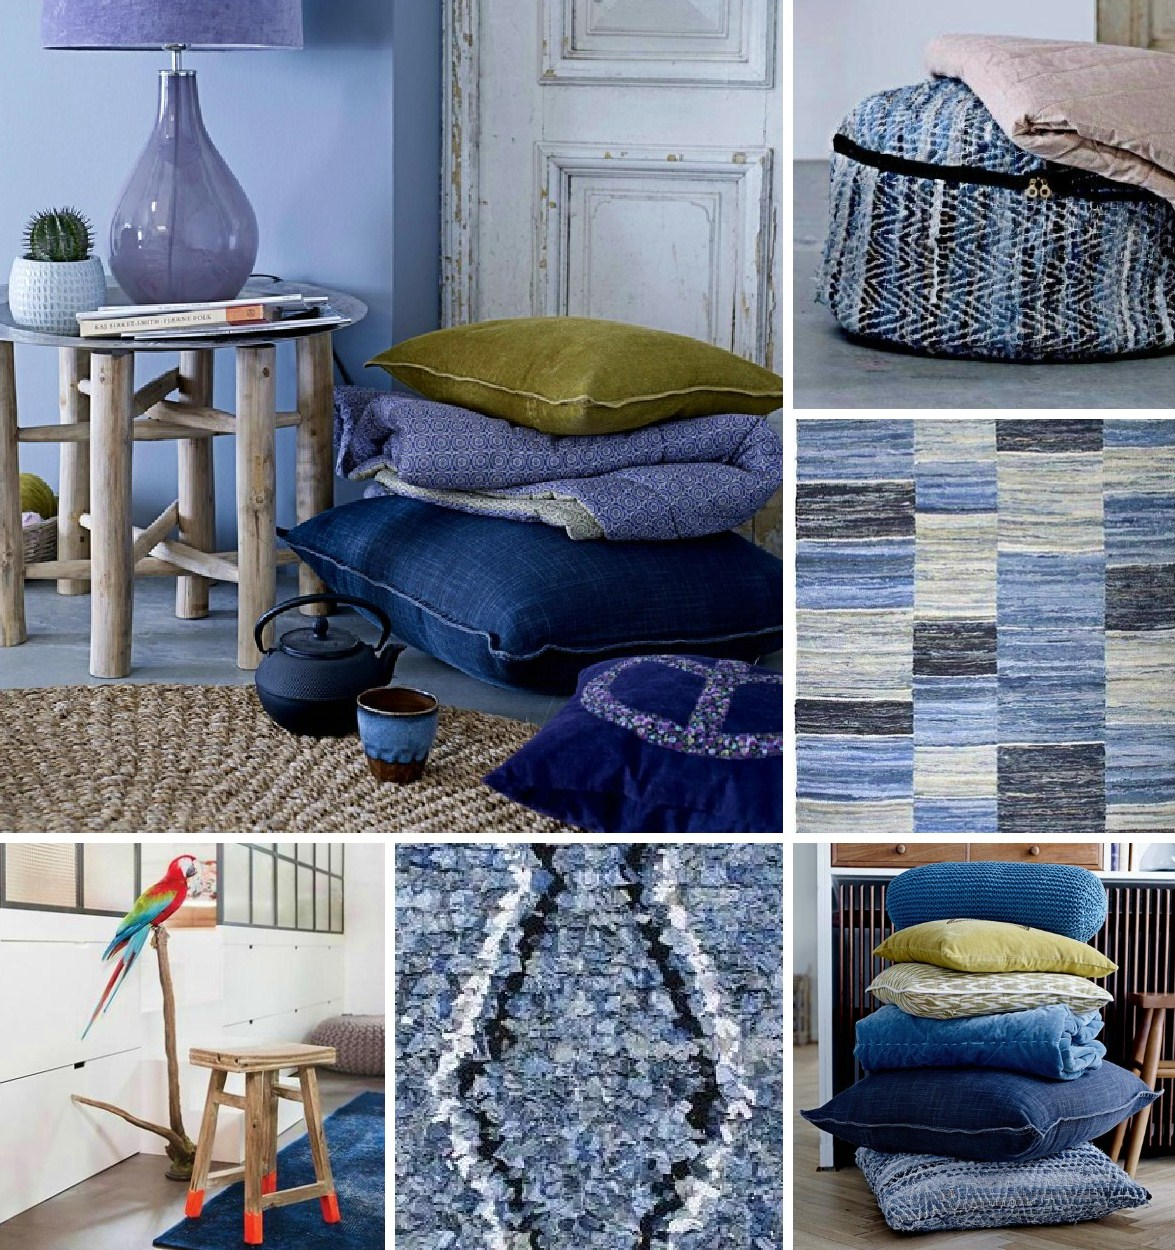 http://decoratorsnotebook.files.wordpress.com/2013/02/denim-home-interior-trend.jpg